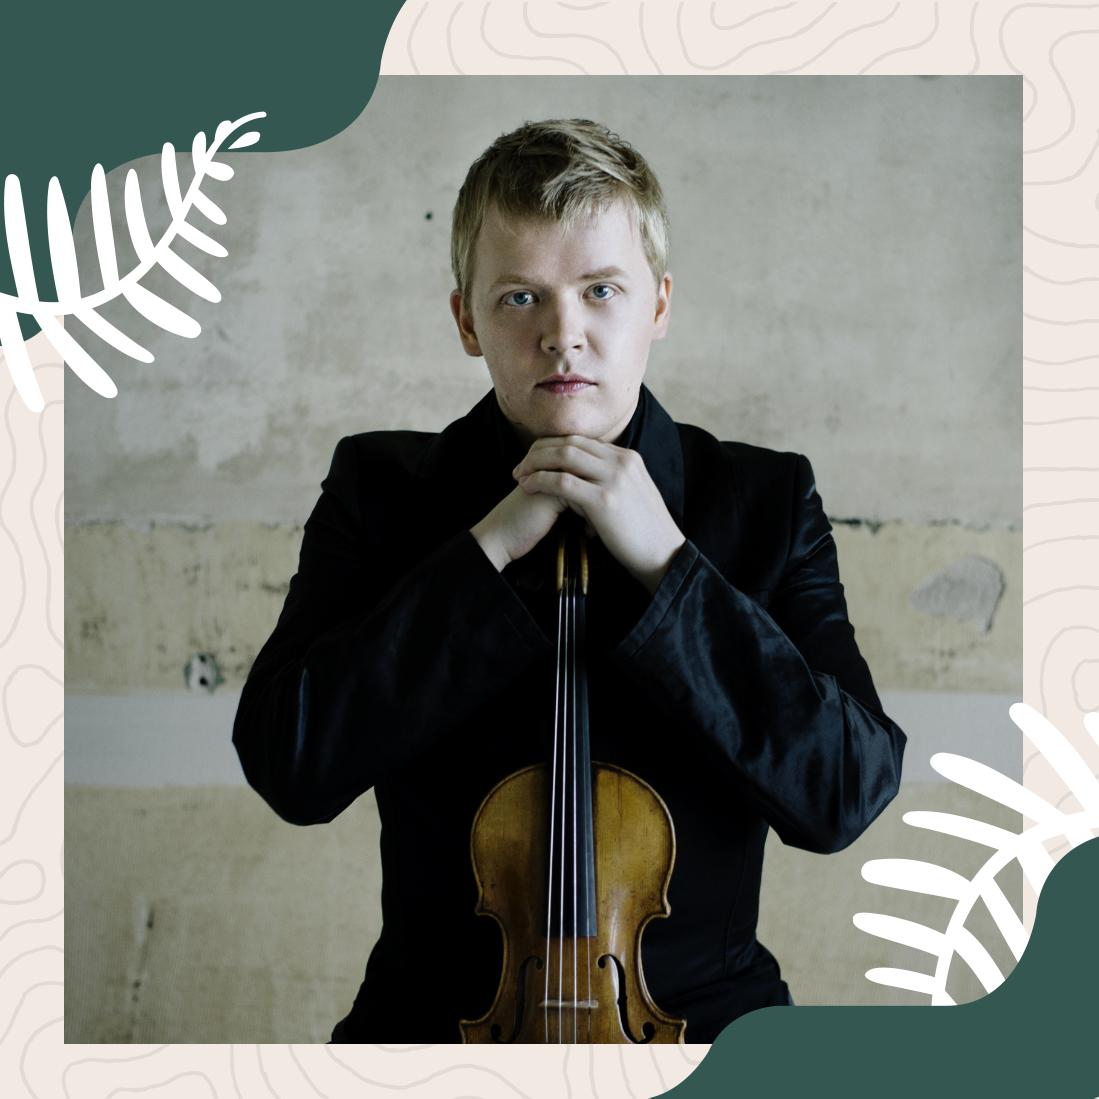 d1dd72b6e0f7bb ... reoccur in his music. Discover Sibelius and the Finnish folk music  during the Sibelius Festival on May 17th   http   bit.ly SibeliusFolkmusic-tw … ...